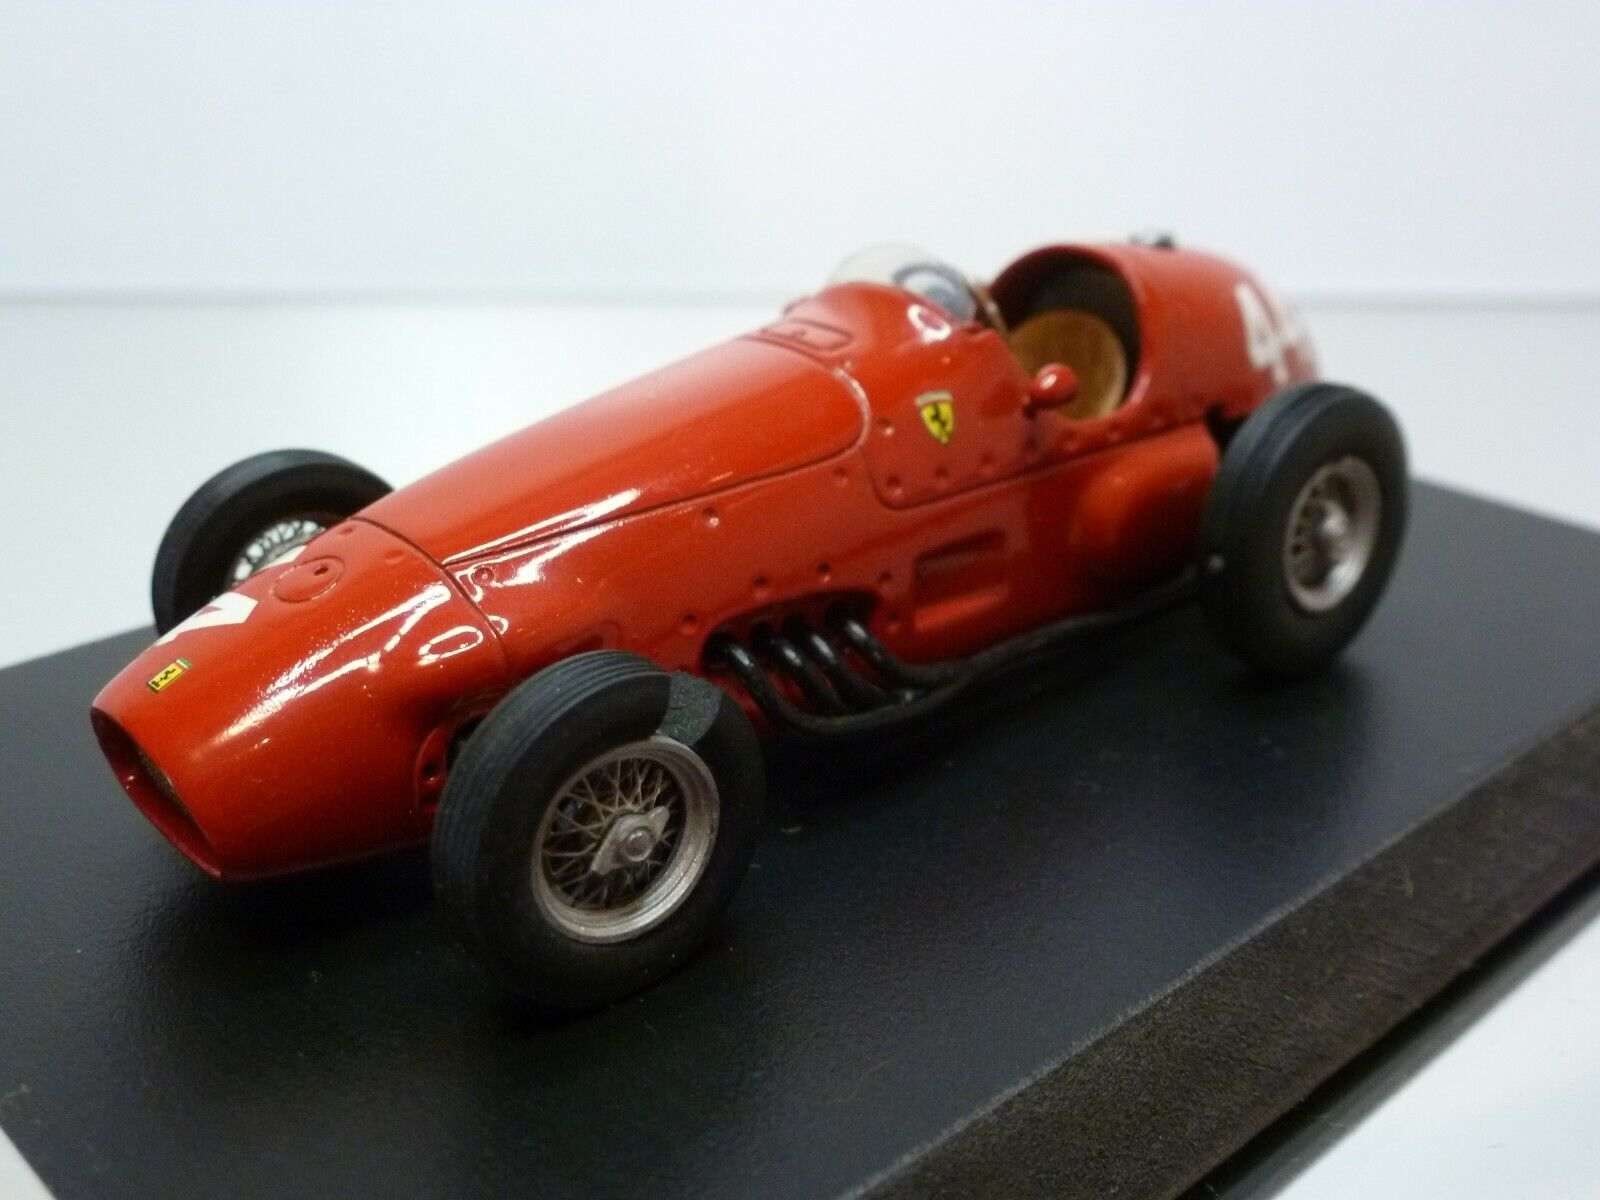 K&R REPLICAS FERRARI 625 1955  44 - F1 rosso 1 43 - VERY GOOD CONDITION on BASE